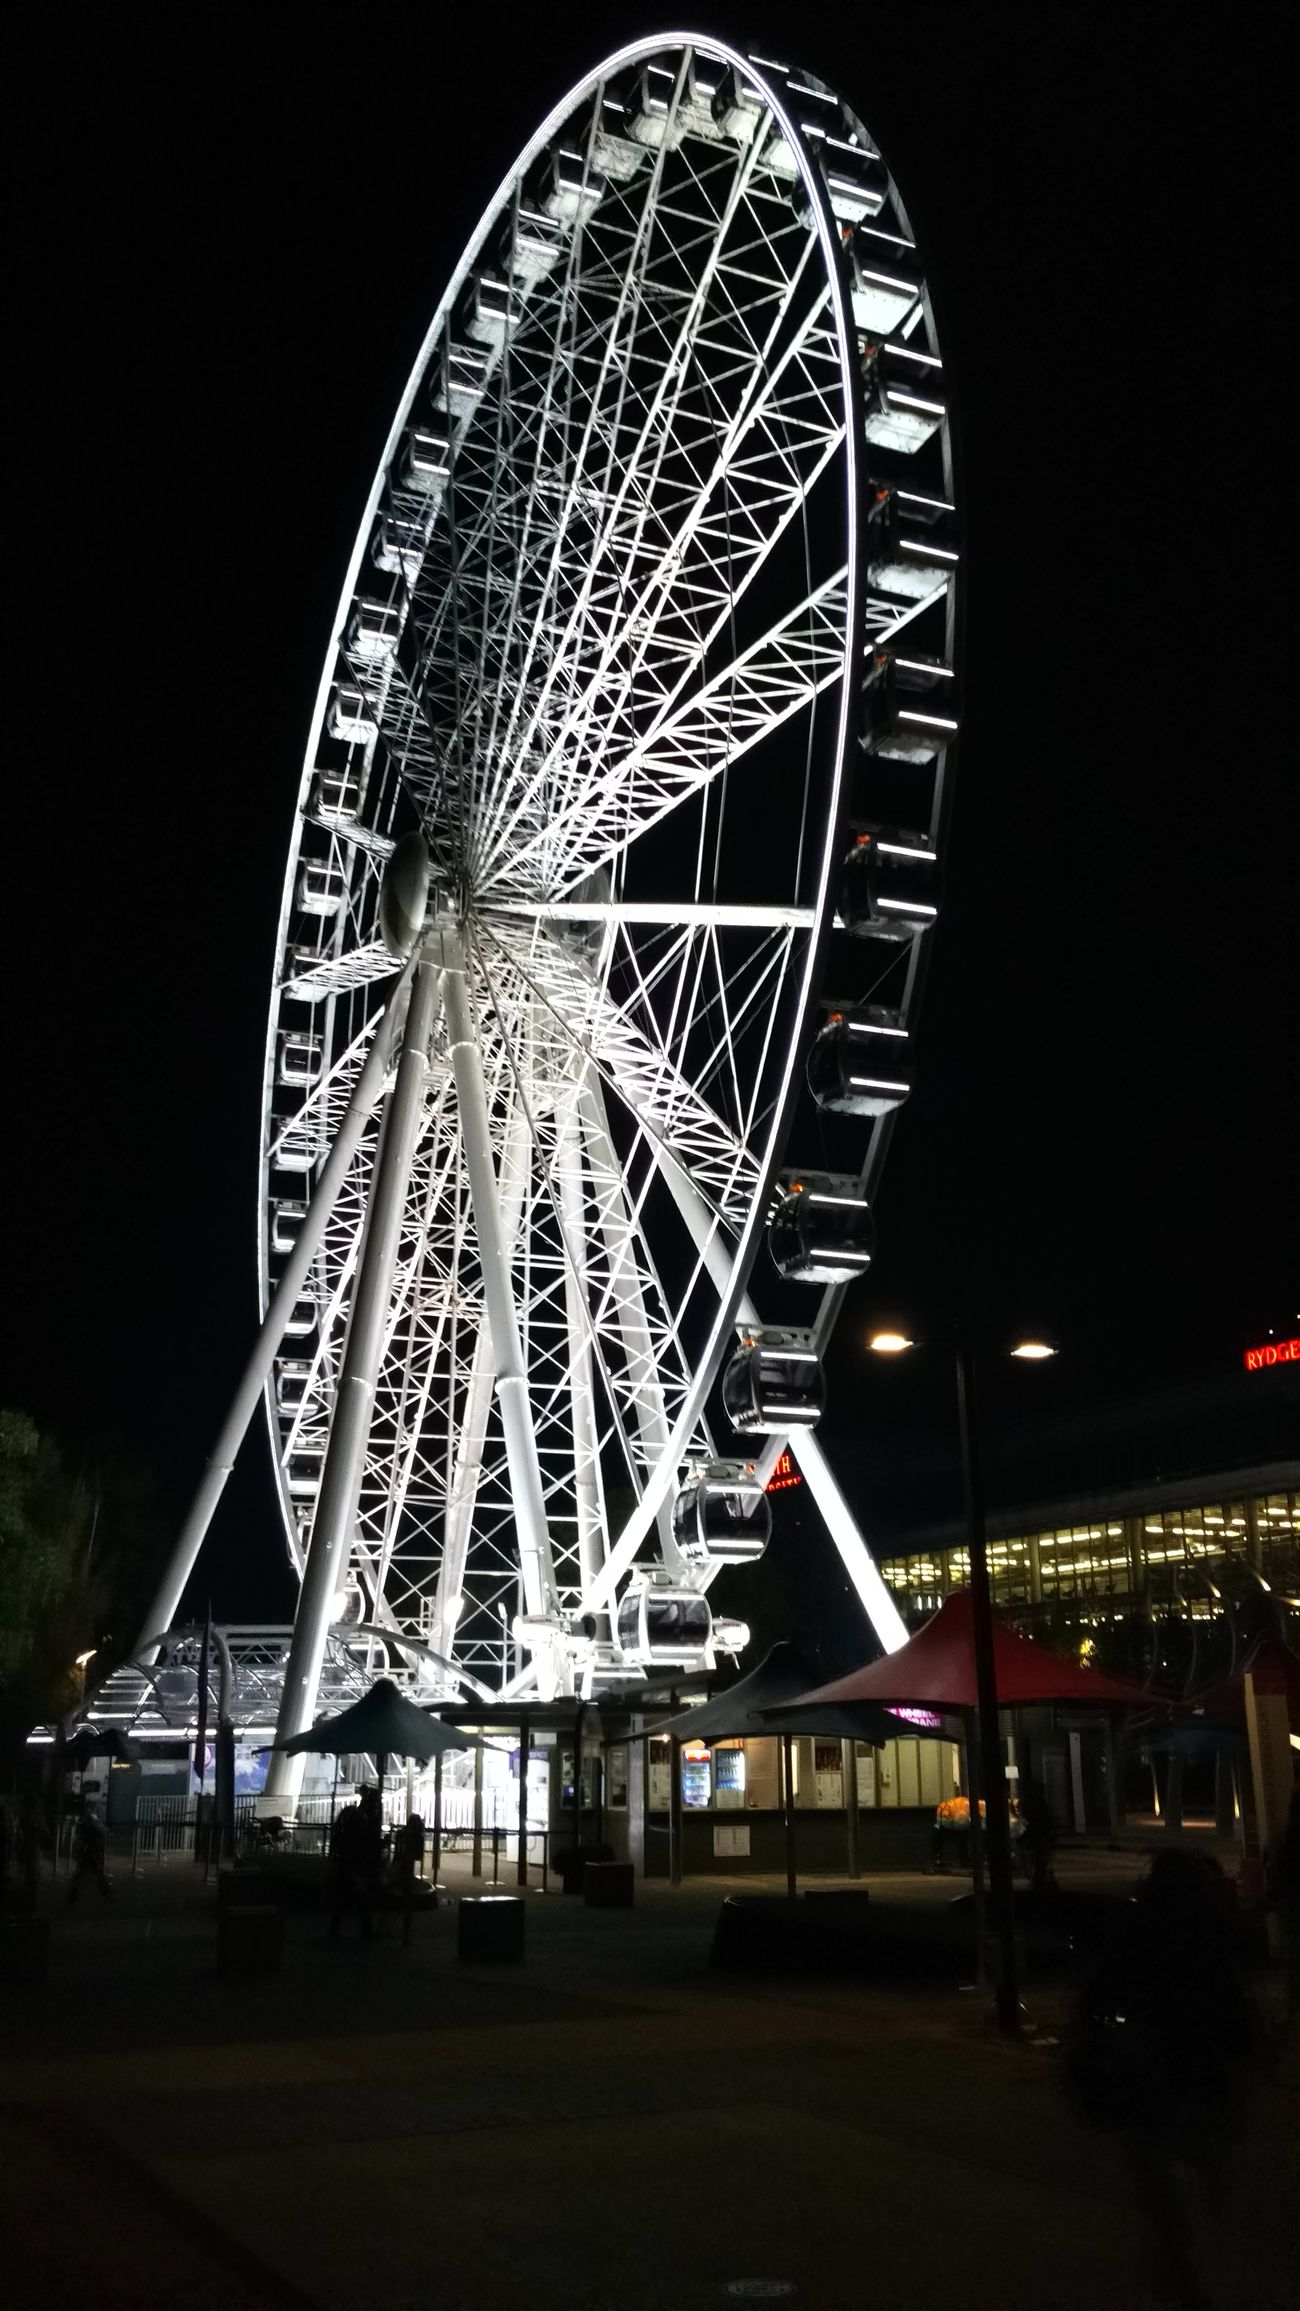 Wheel of Brisbane. EyeEm 2016 Large Built Structure Ferris Wheel Illuminated Low Angle View Outdoors From My Point Of View Taking PhotosCheck This Out Travel Photography The Purist (no Edit, No Filter) Mesmerized Mobilephotography in Brisbane, Australia